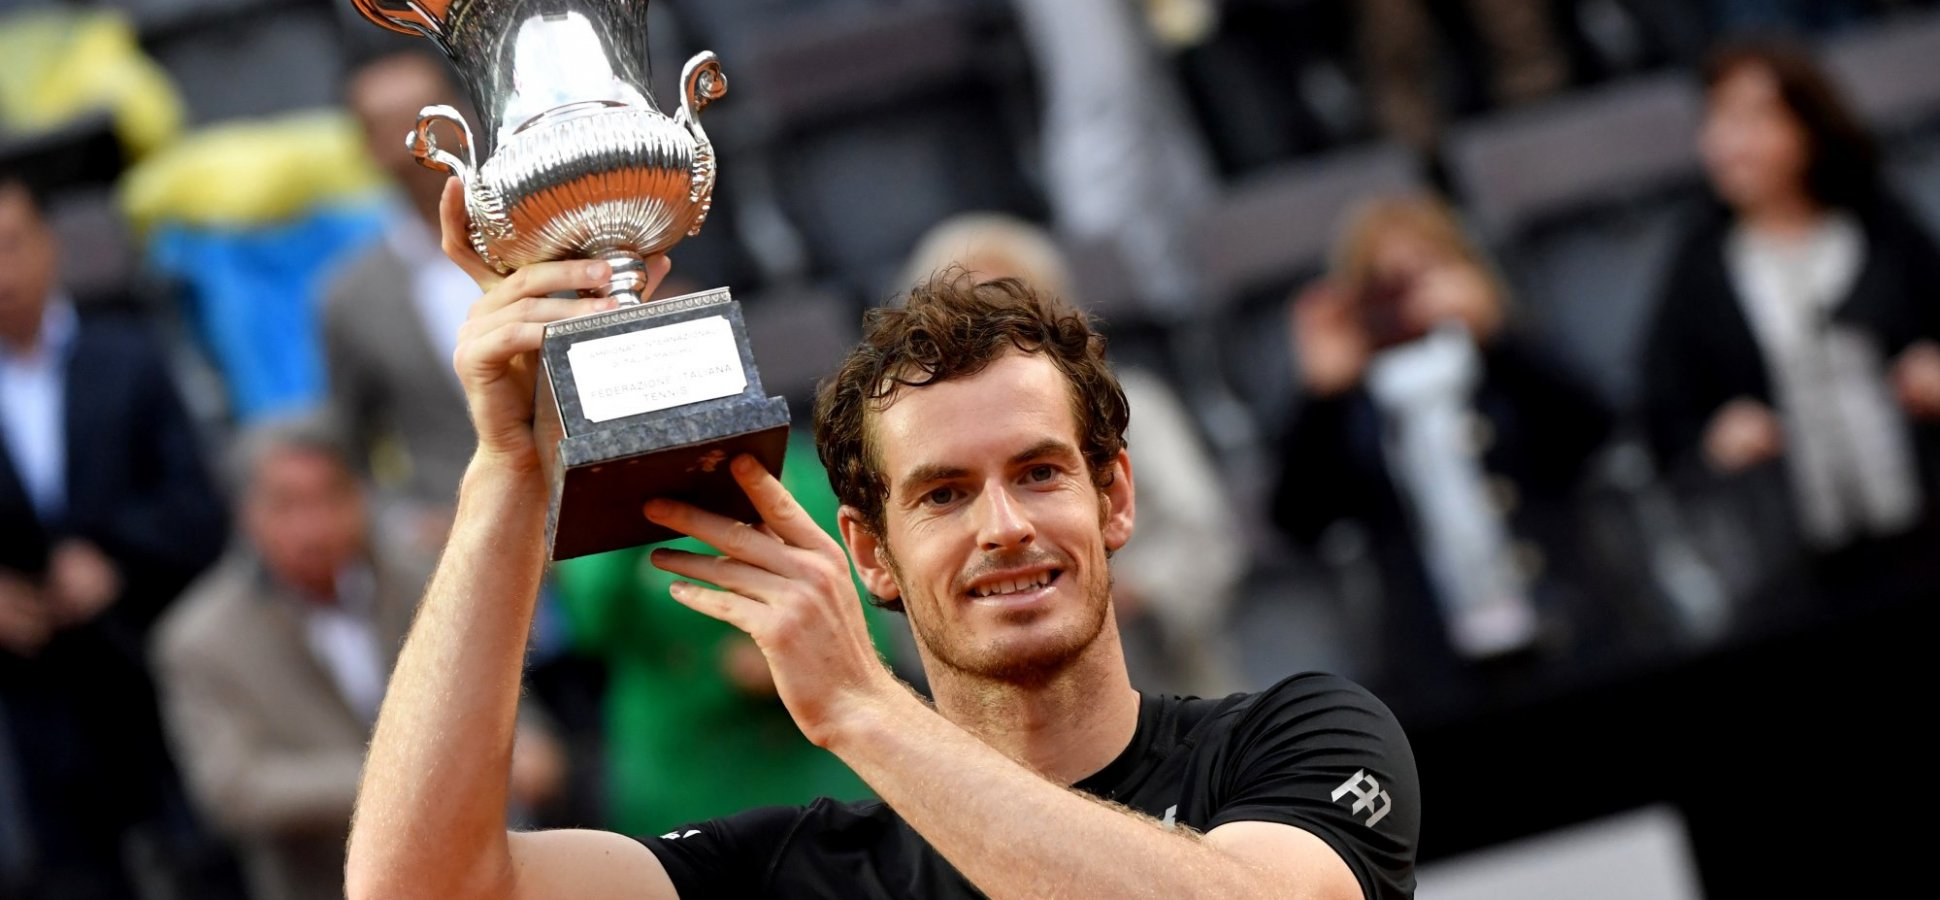 Andy Murray is Retiring. Here Are 3 Lessons From His Stellar Career